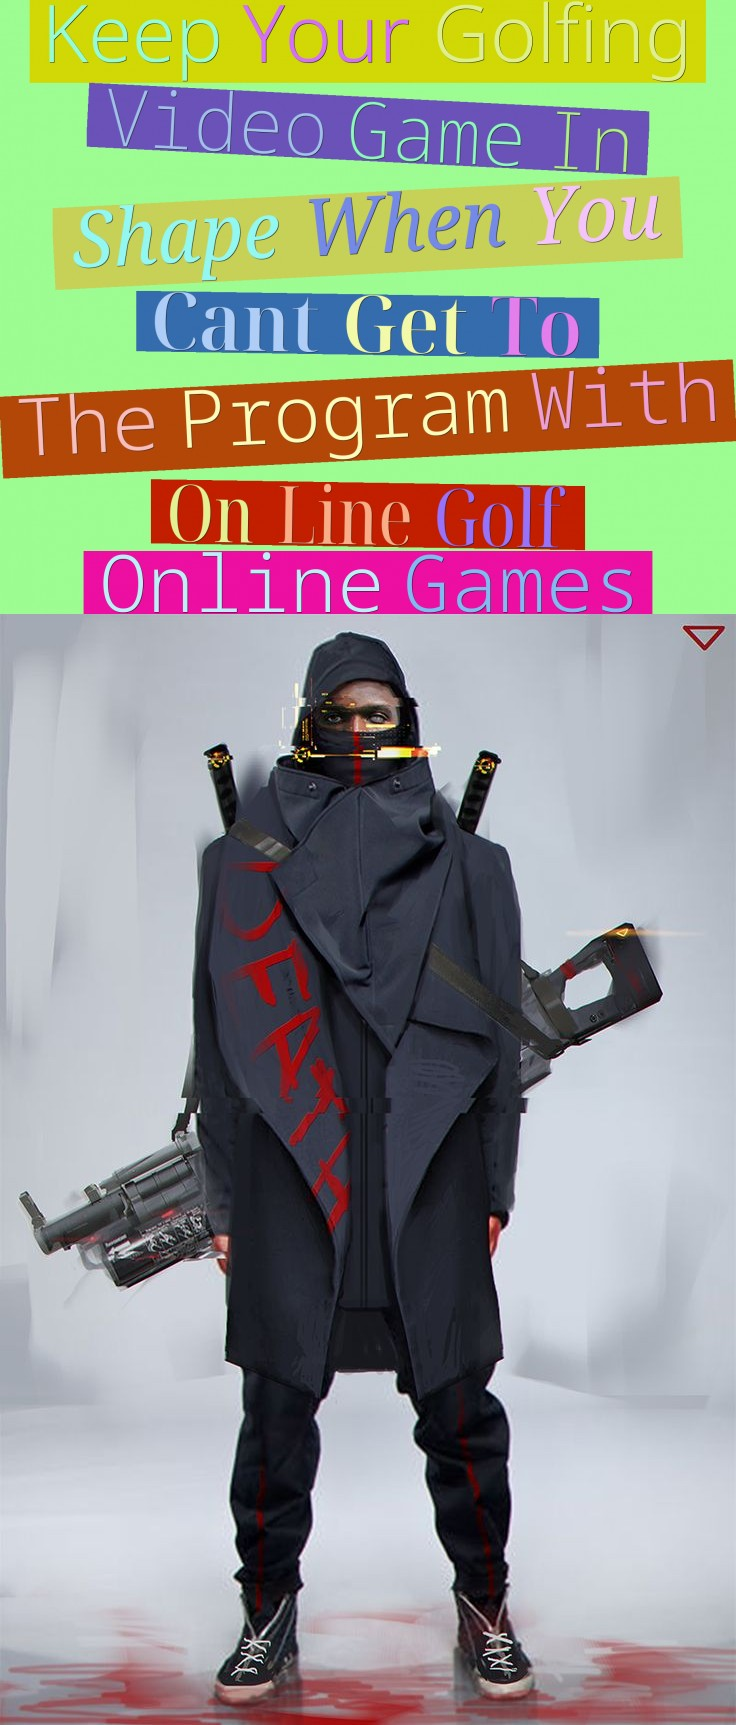 Keep Your Golfing Video Game In Shape When You Can't Get To The Program - With On Line Golf Online Games